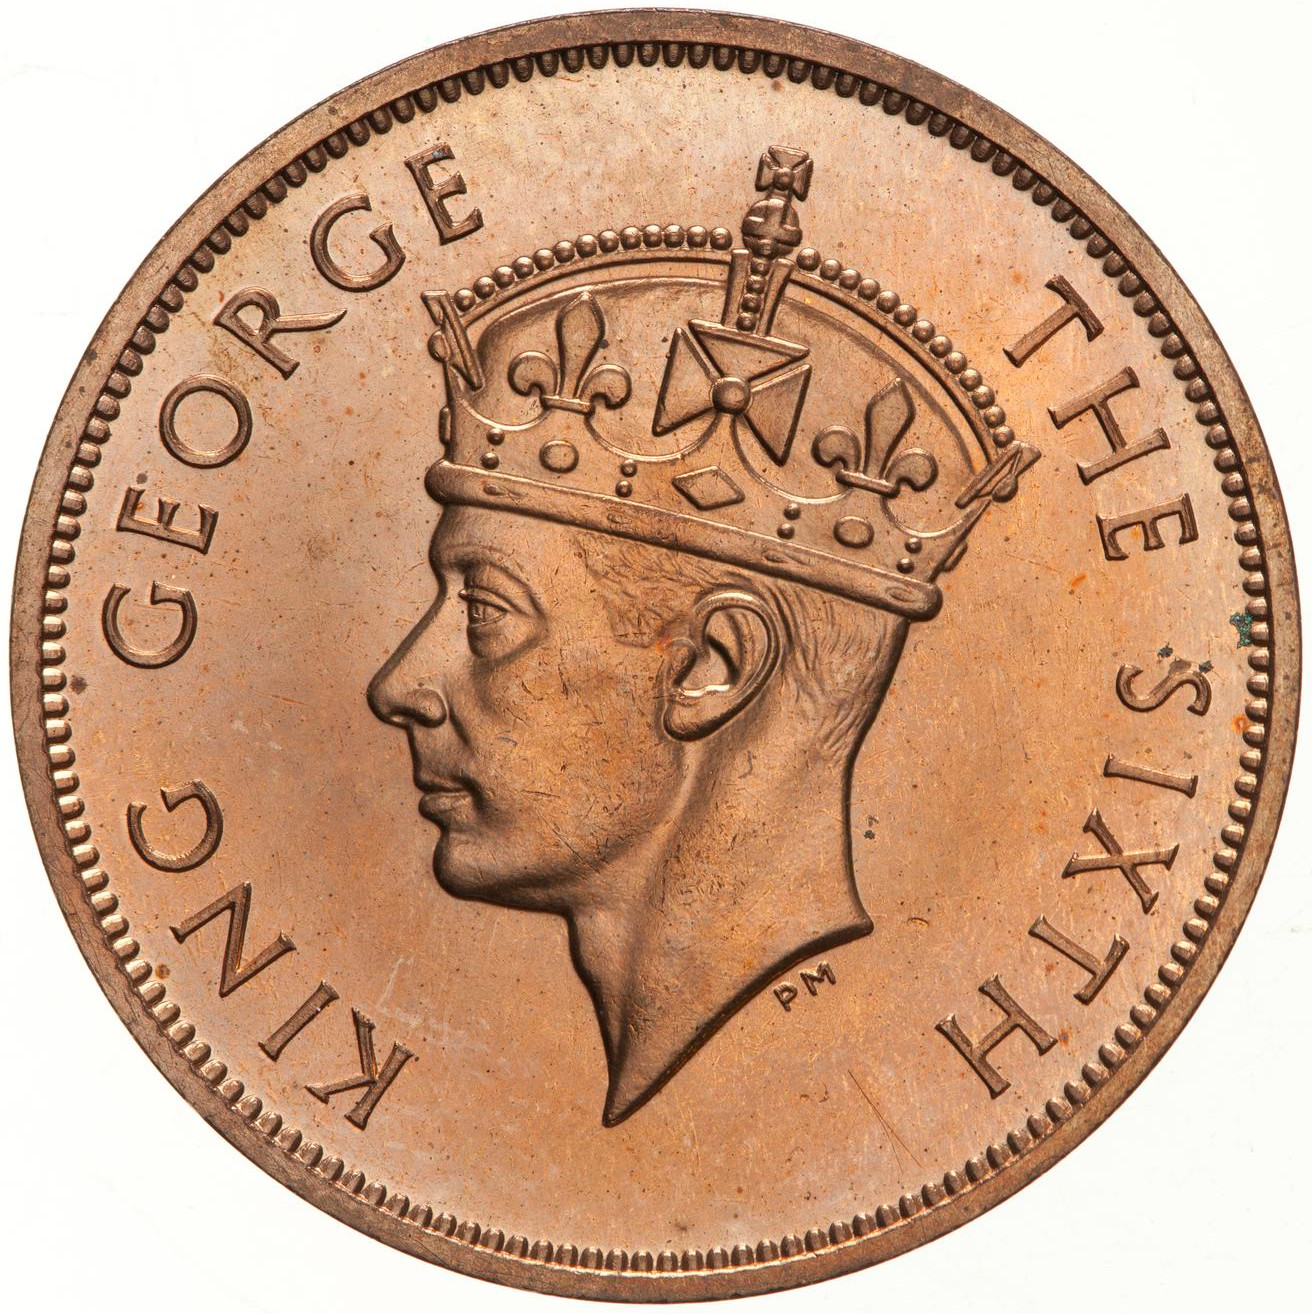 One Cent: Photo Proof Coin - 1 Cent, British Honduras (Belize), 1949